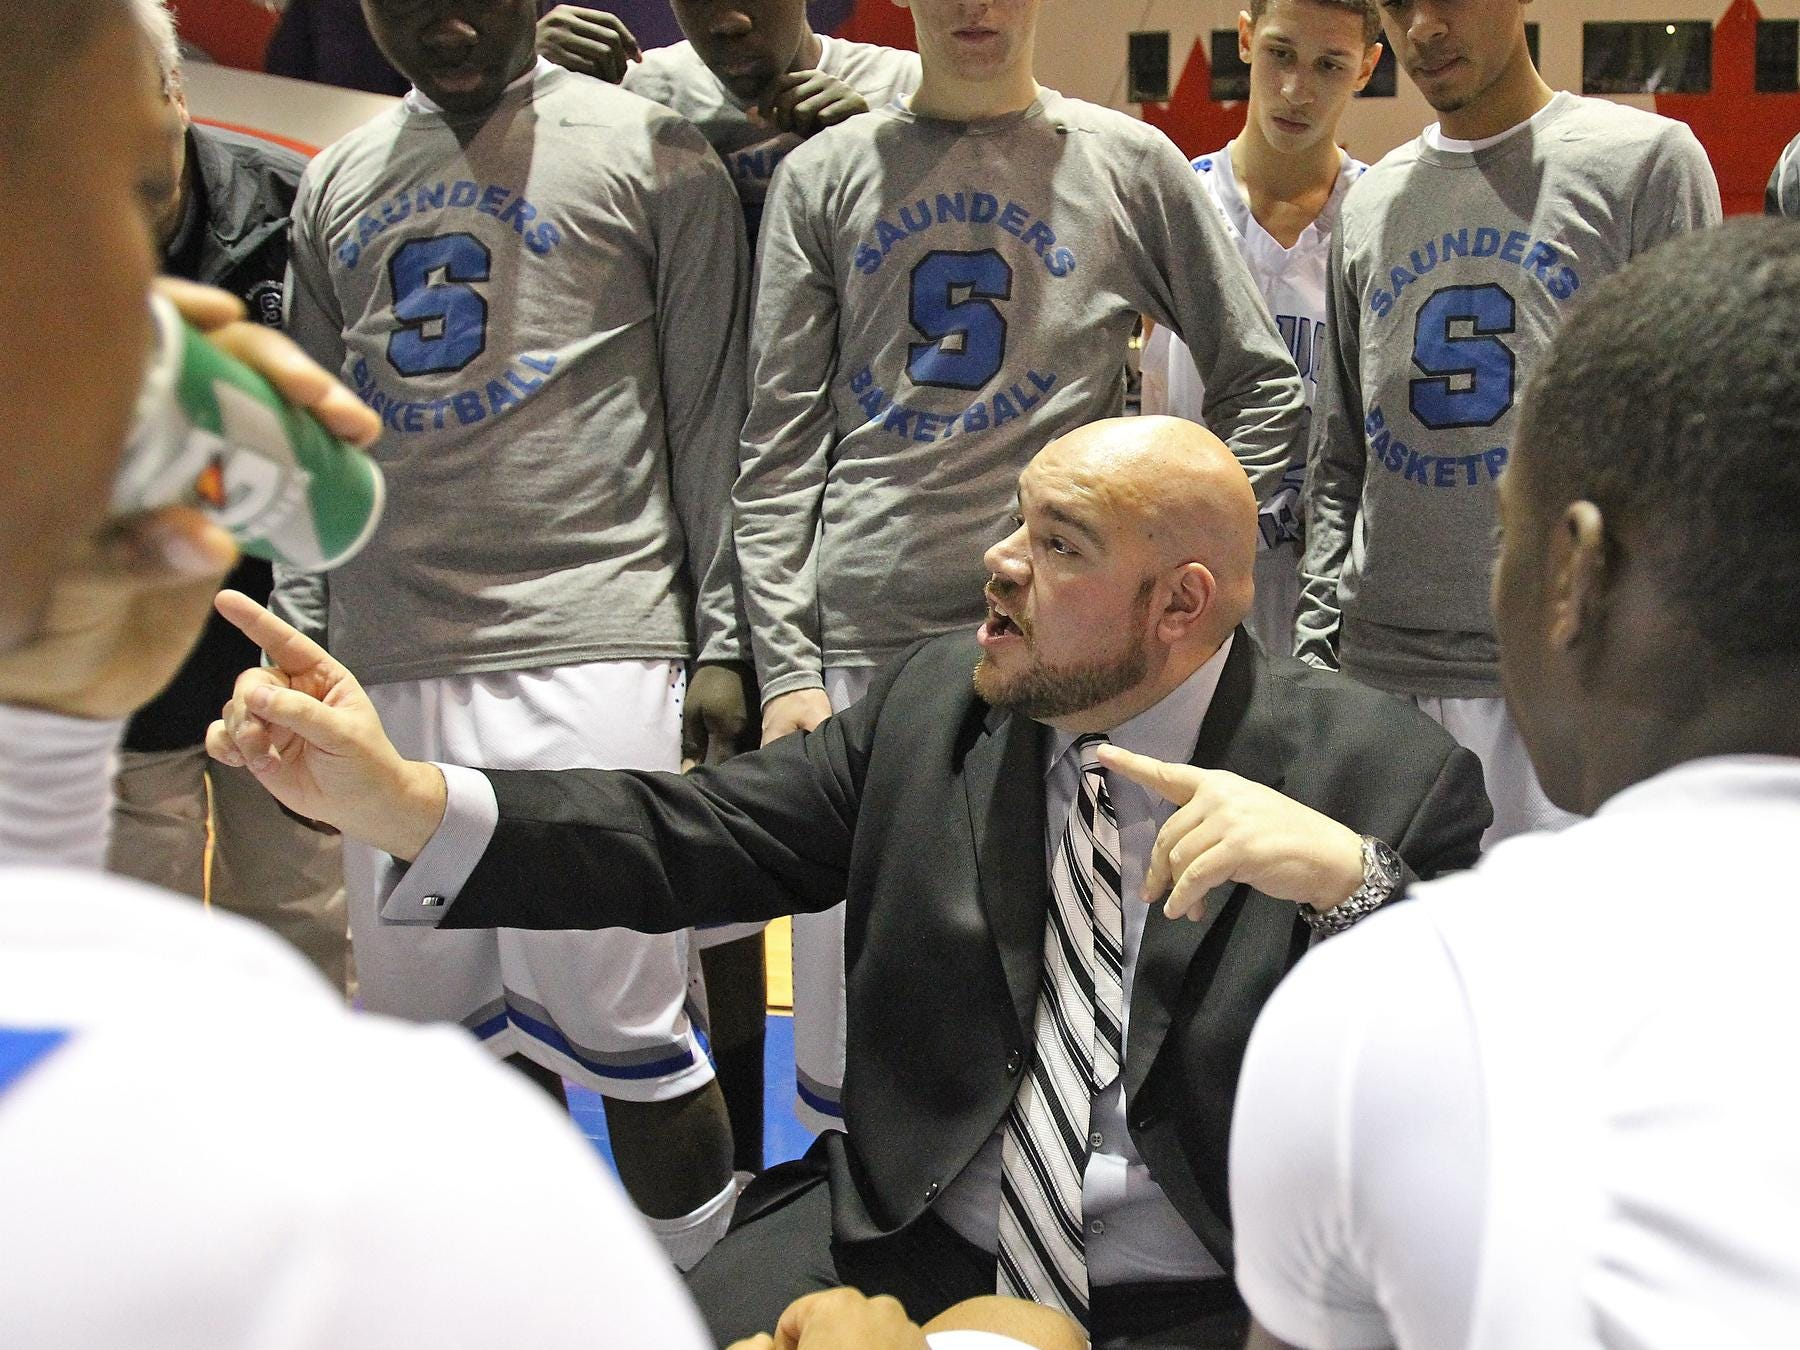 """Saunders boys basketball head coach Anthony Nicodemo, seen at a January game in New Rochelle, came out as gay and won praise and support. He called Friday's Supreme Court ruling """"stunning."""""""